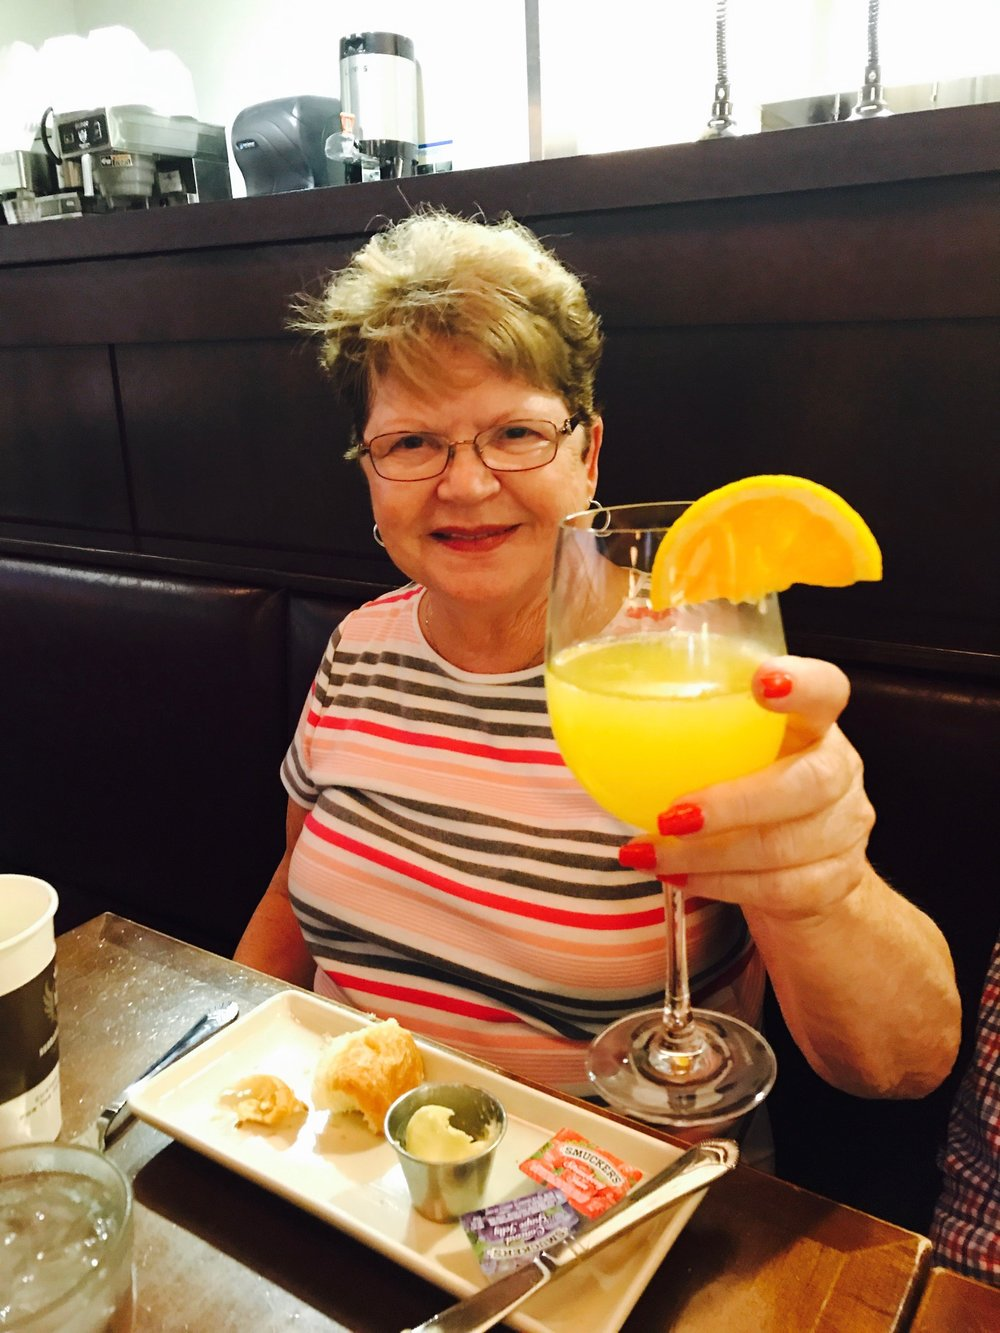 The early morning flight required several mimosas